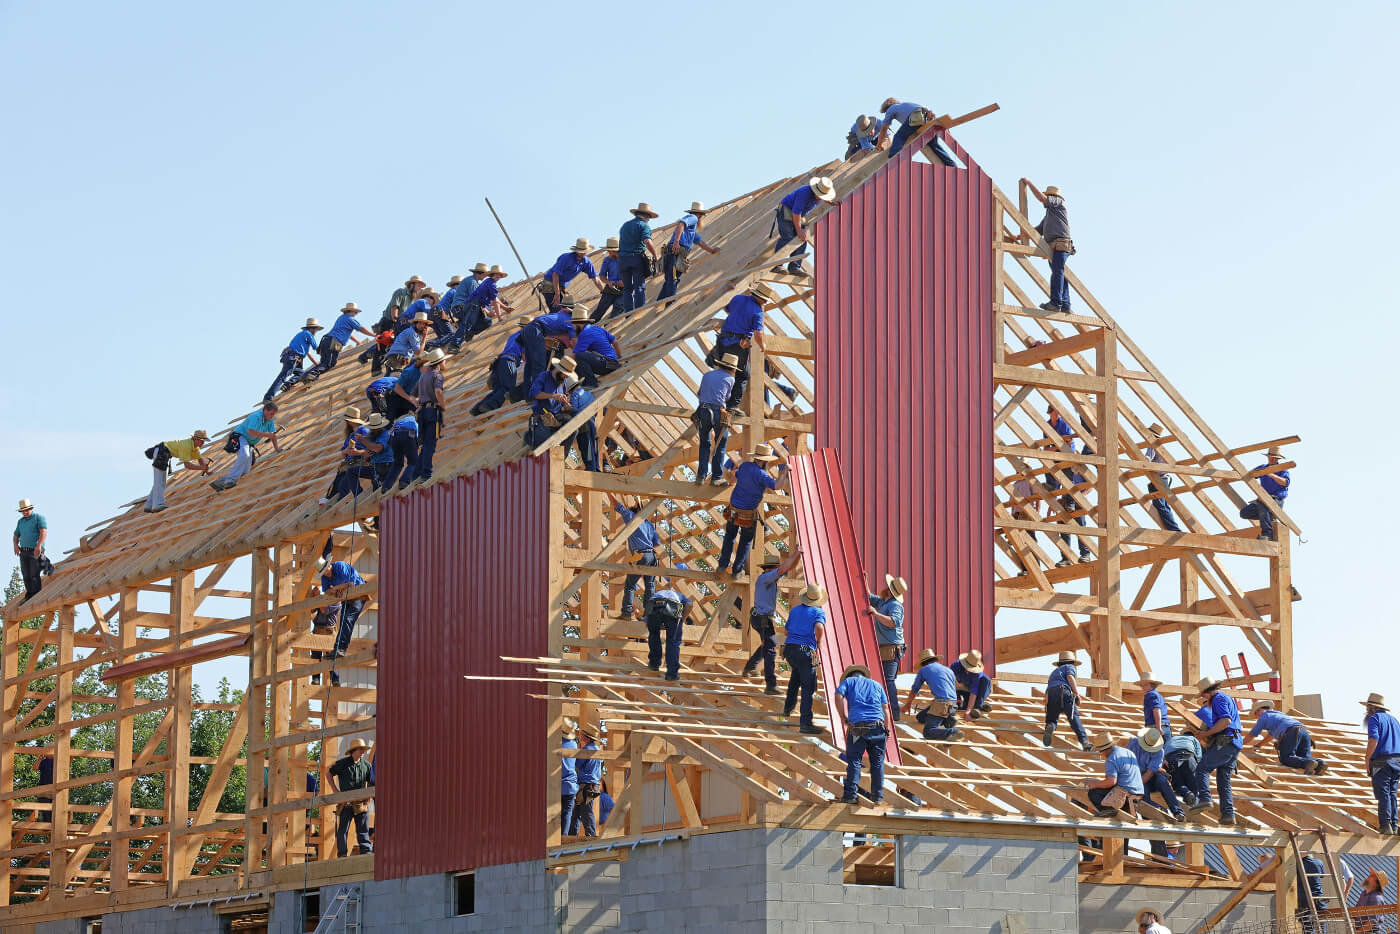 People building a house together